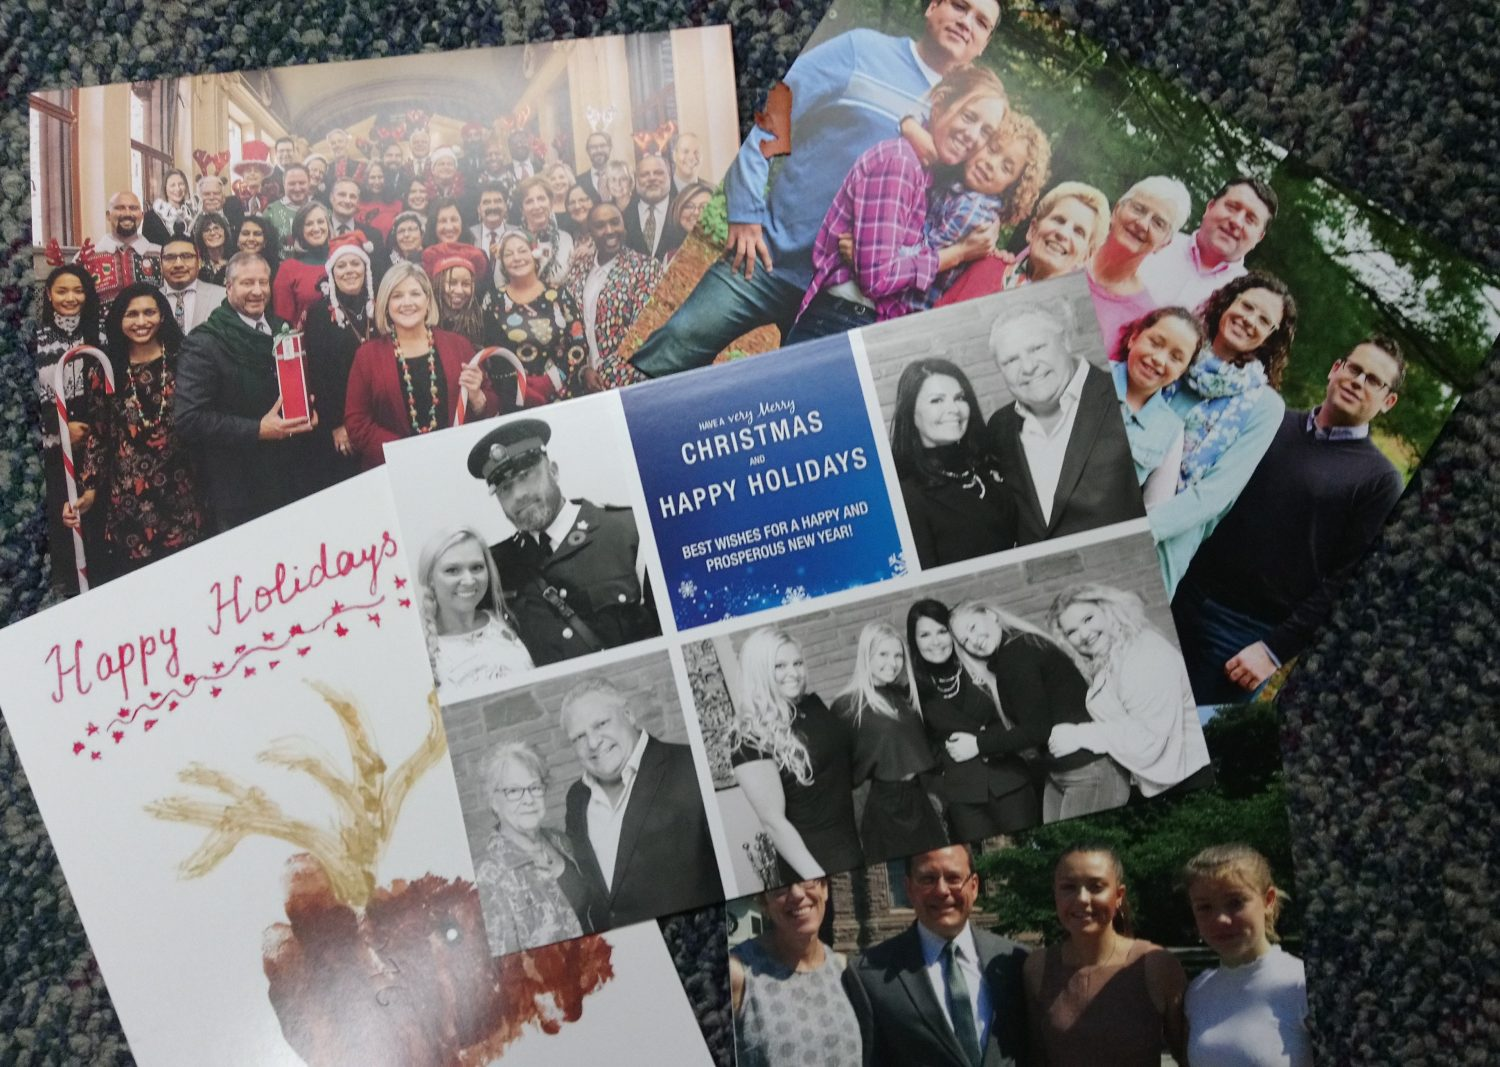 Milloy: The real story behind politicians' Christmas cards